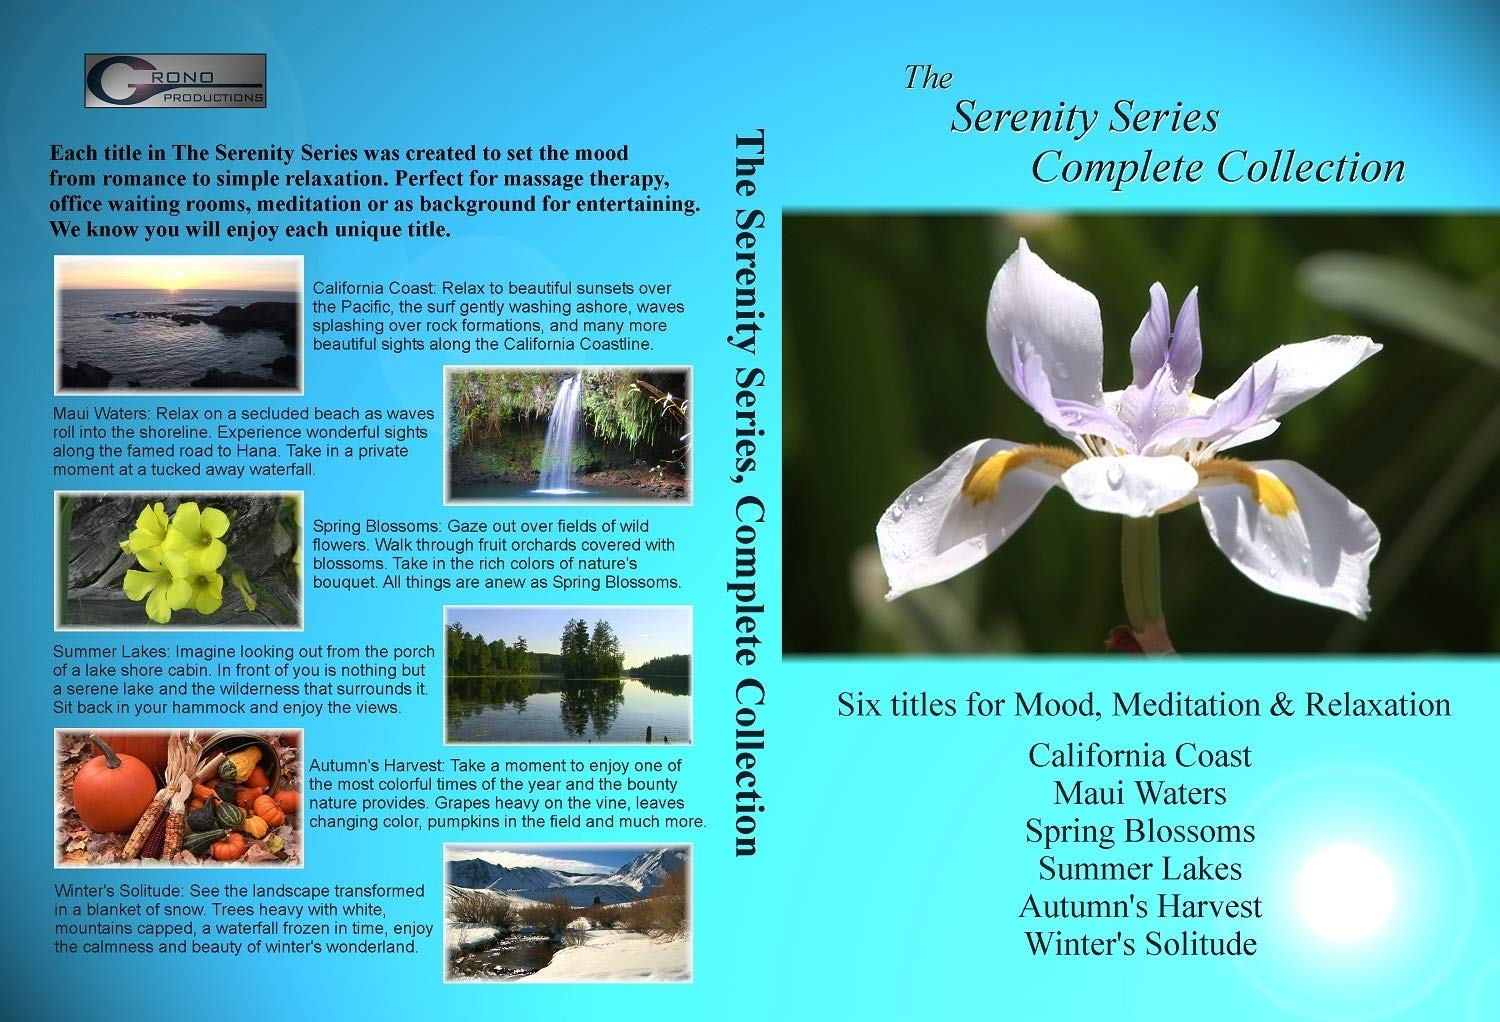 The Serenity Series, Complete Collection - (6 videos): California Coast, Spring Blossoms, Summer Lakes, Autumn's Harvest, Winter's Solitude, Maui Waters [Blu-ray]... for Mood, Relaxation & Meditation